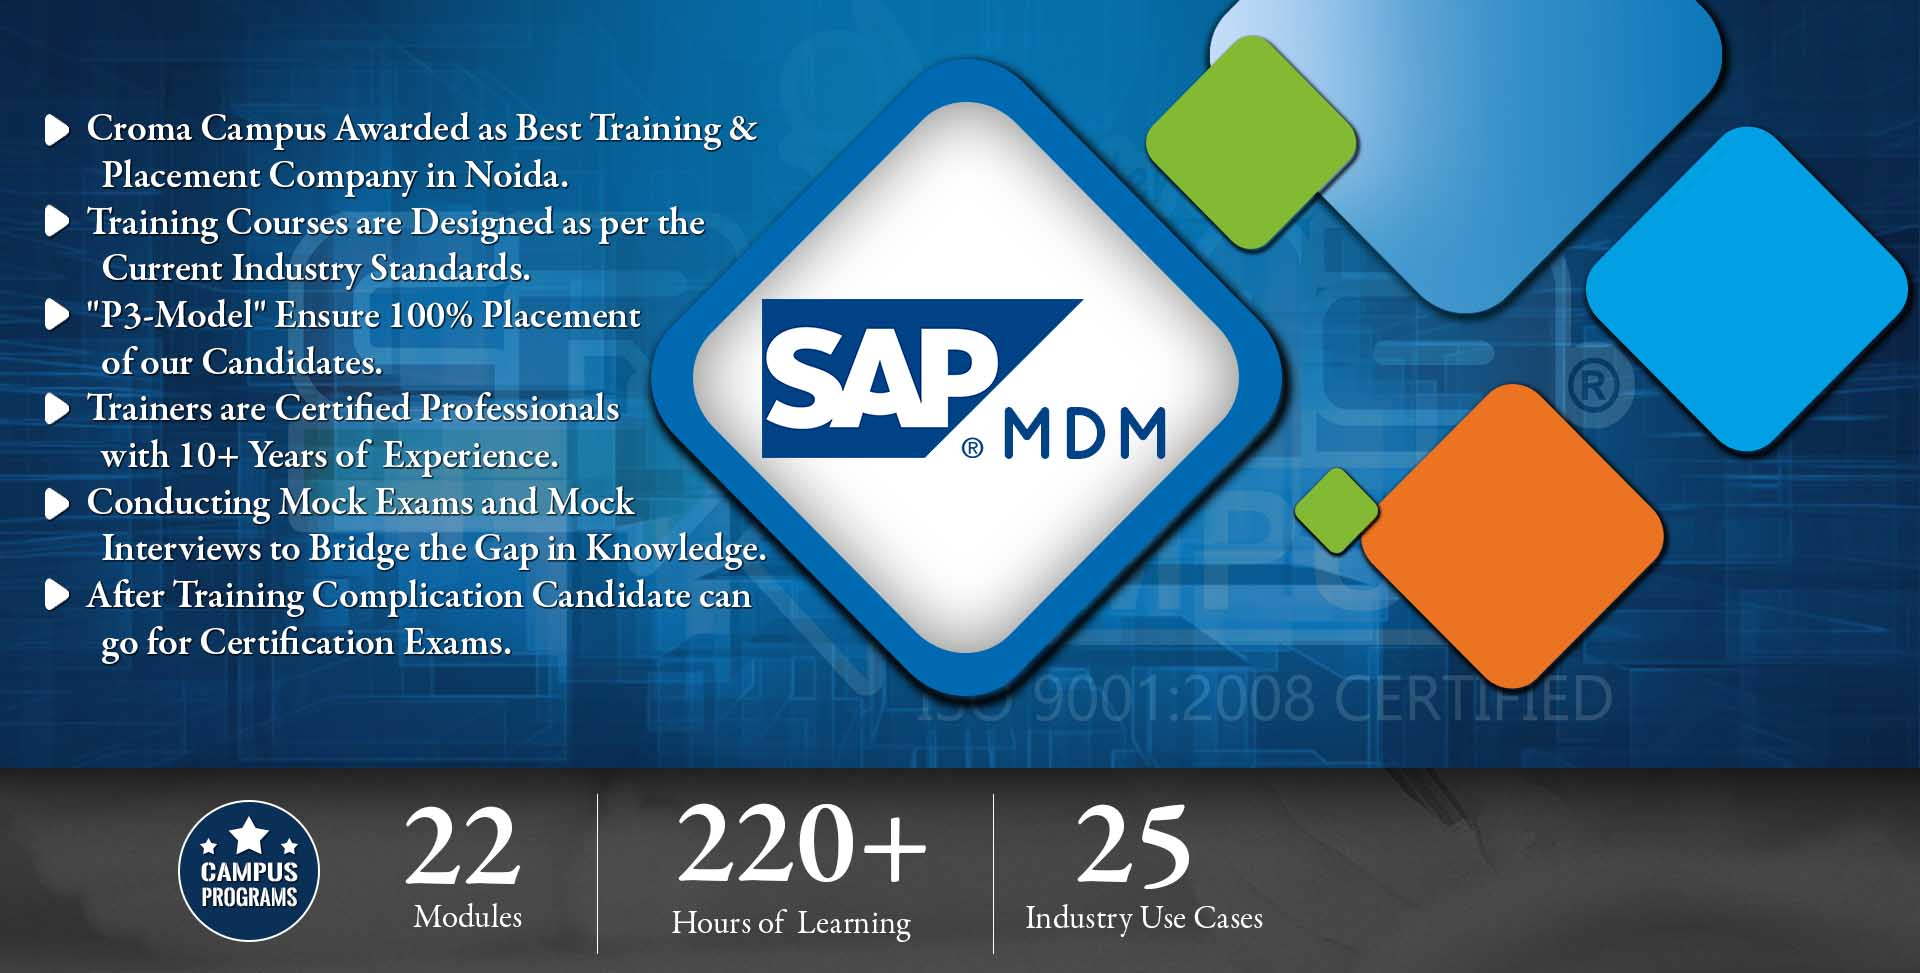 SAP MDM Training in Delhi